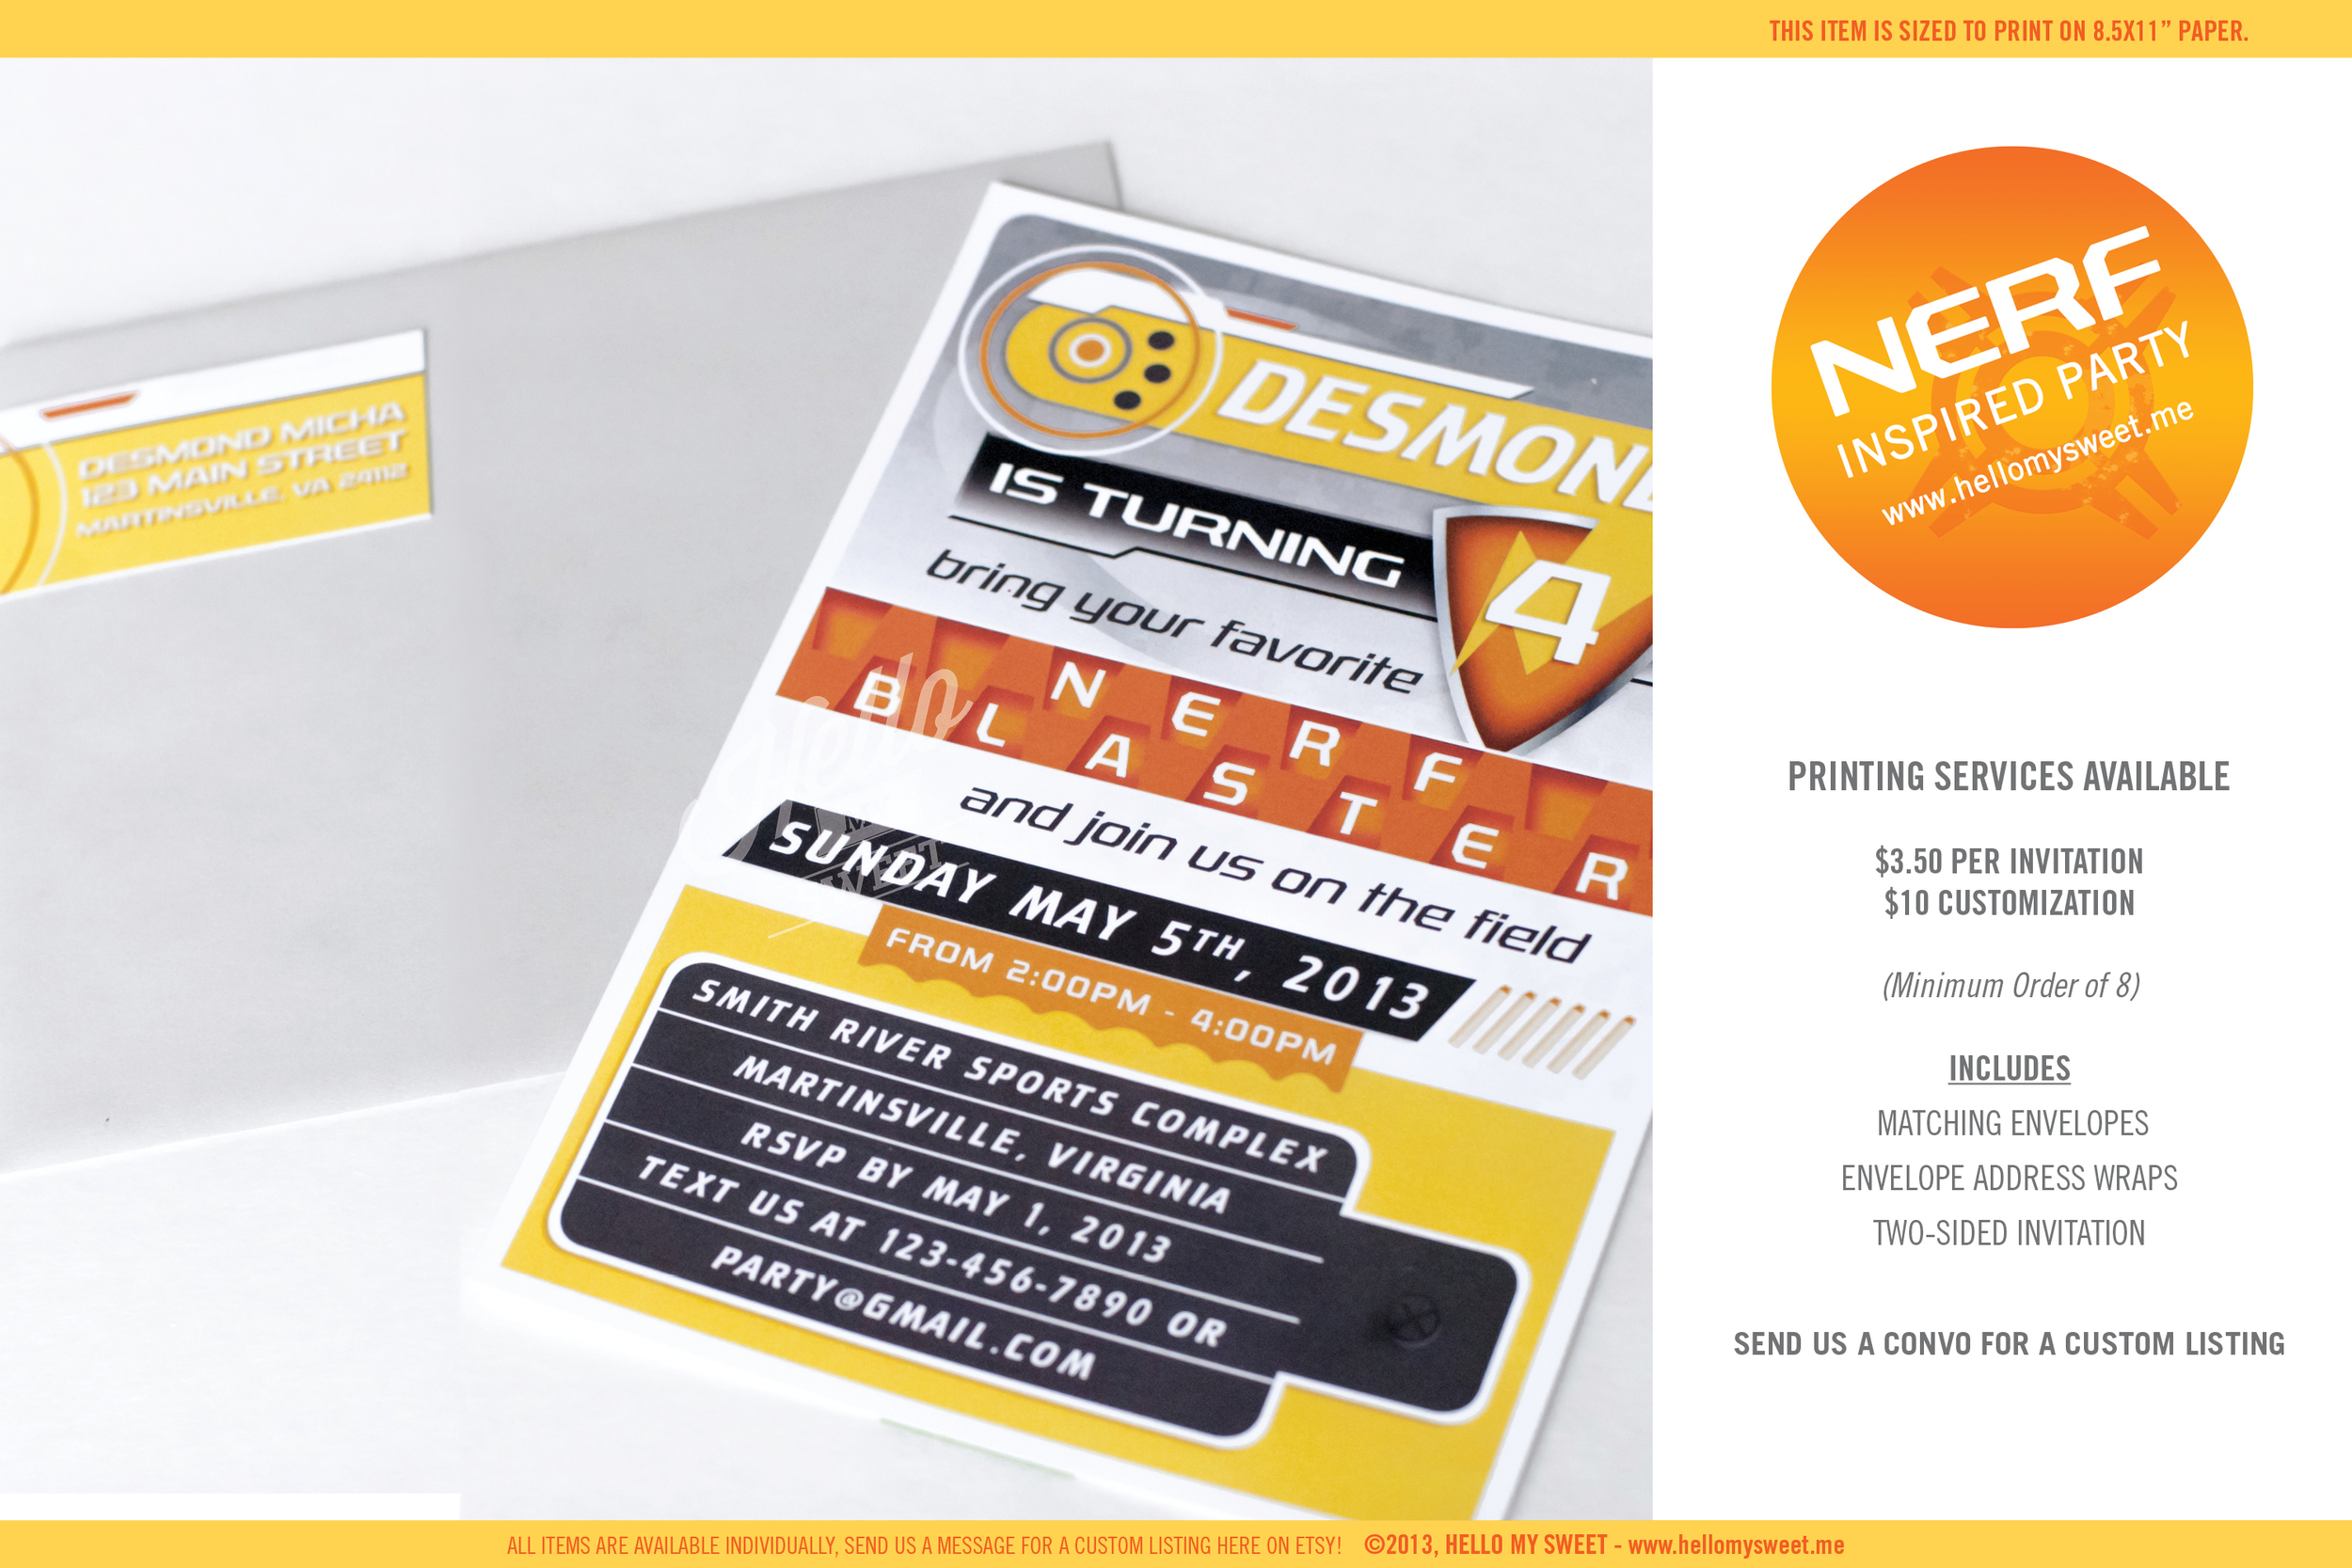 Nerf Birthday party - Printable Invitations